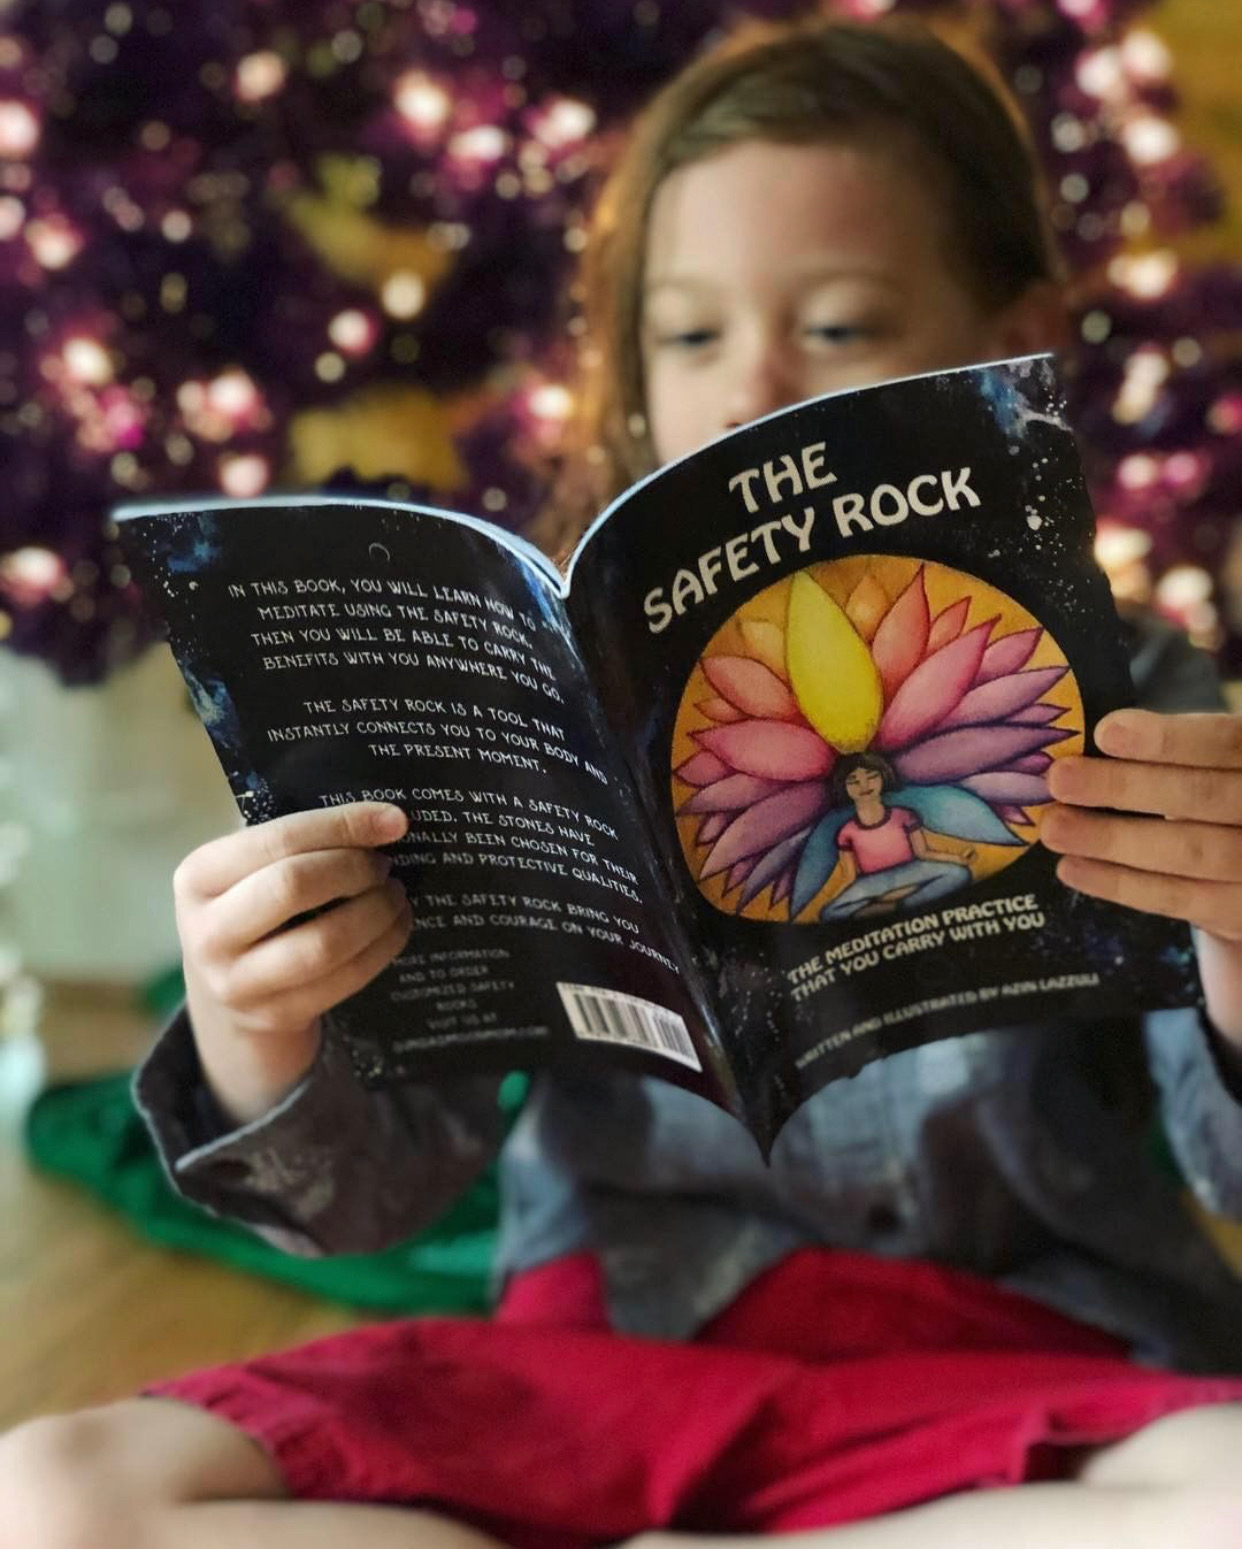 The Safety Rock: A Special Tool for Teaching Children to Meditate